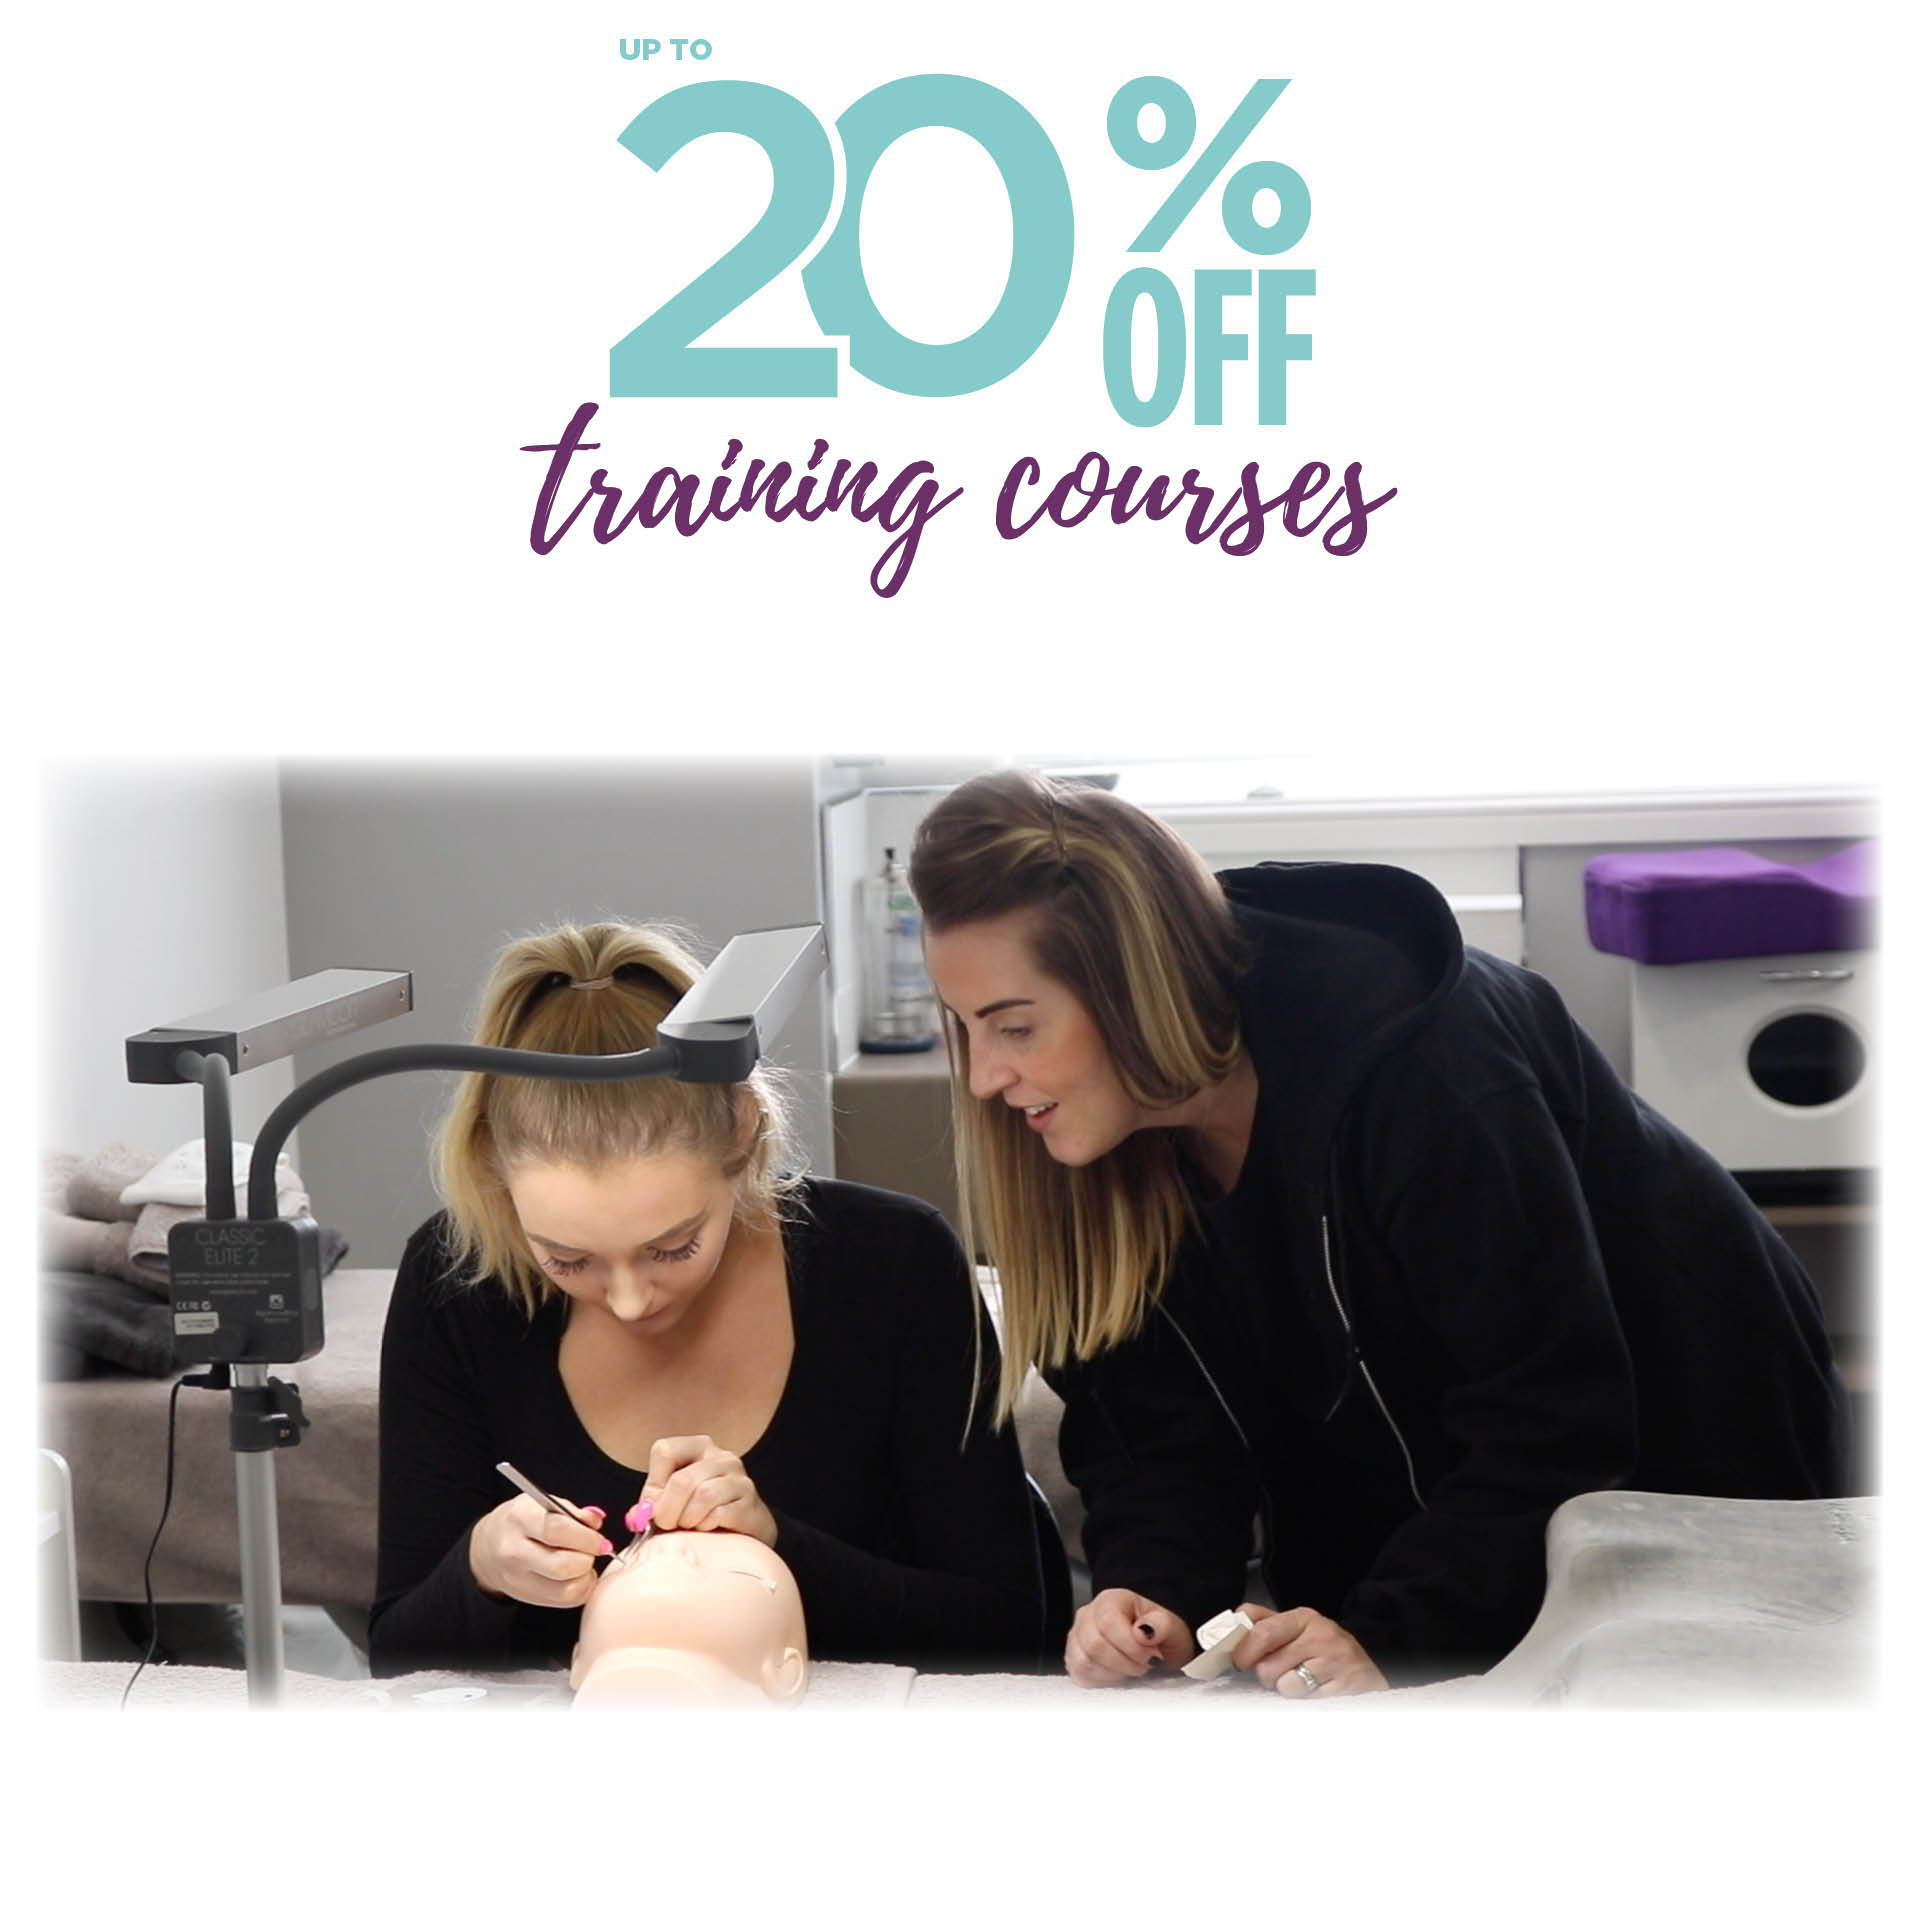 Up to 20% off training courses